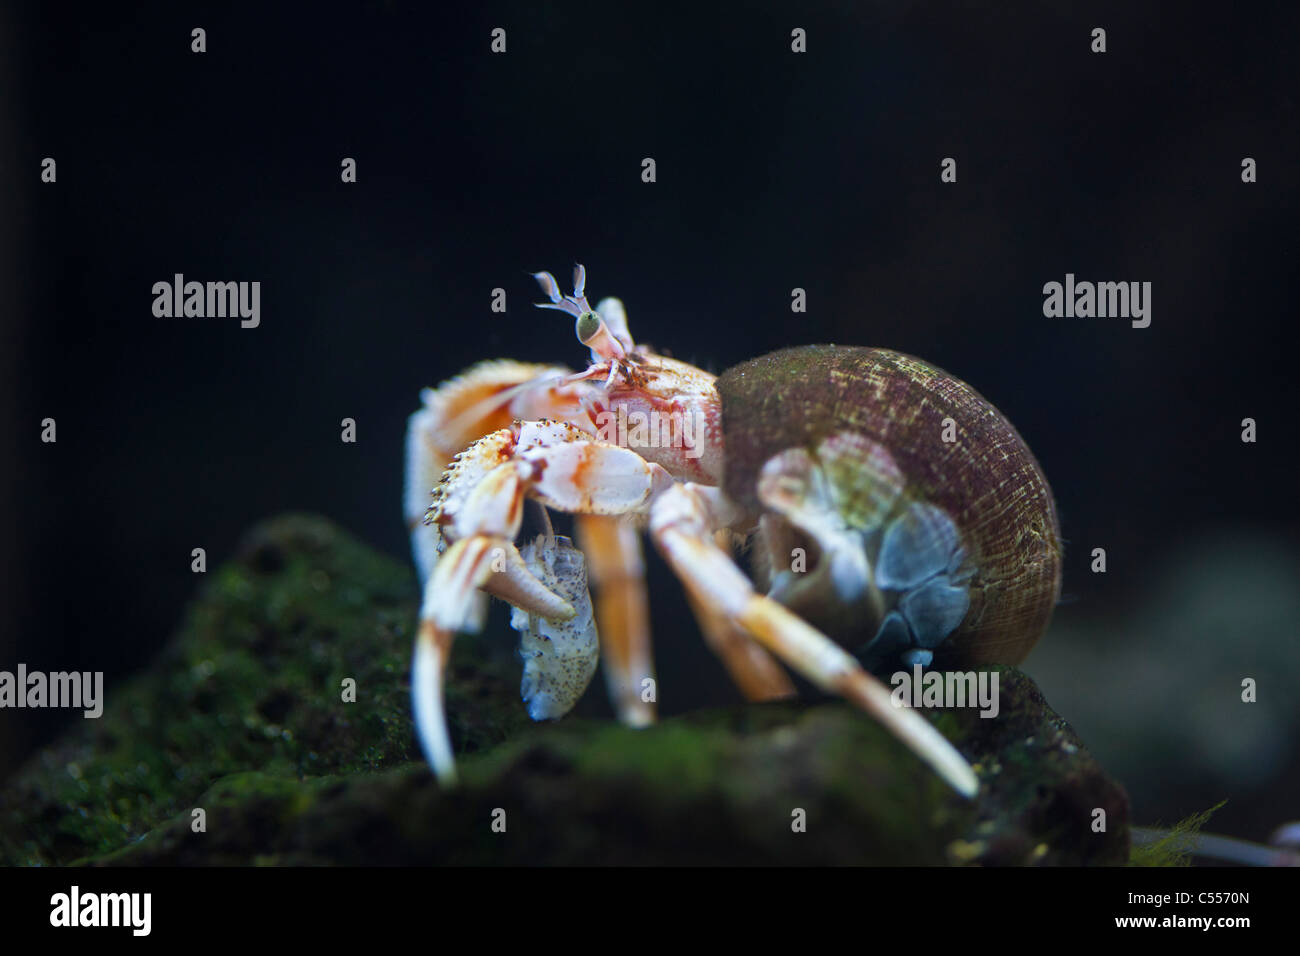 The Netherlands, Nes, Ameland Island, belonging to Wadden Sea Islands. Unesco World Heritage Site. Hermit crab in - Stock Image